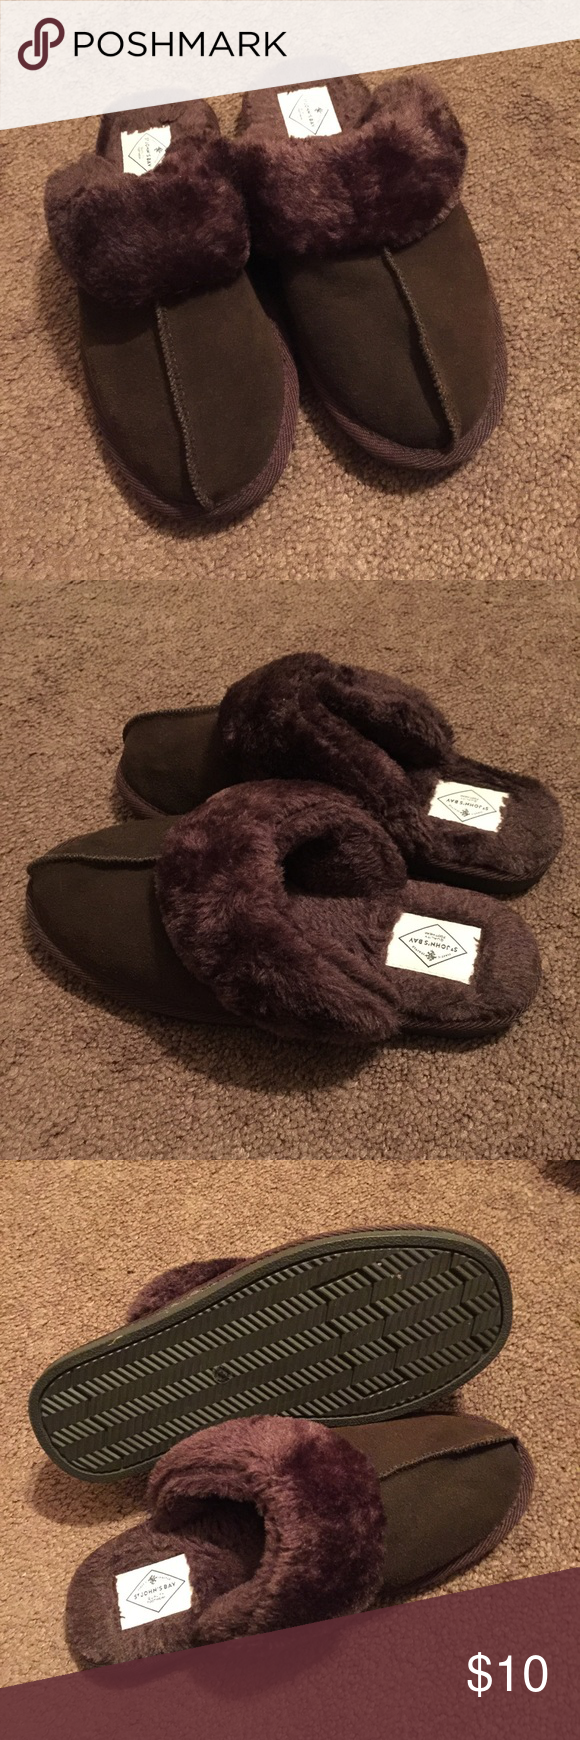 Brown Fluffy Slippers Size 7M NWOT St. John's Bay Shoes Slippers